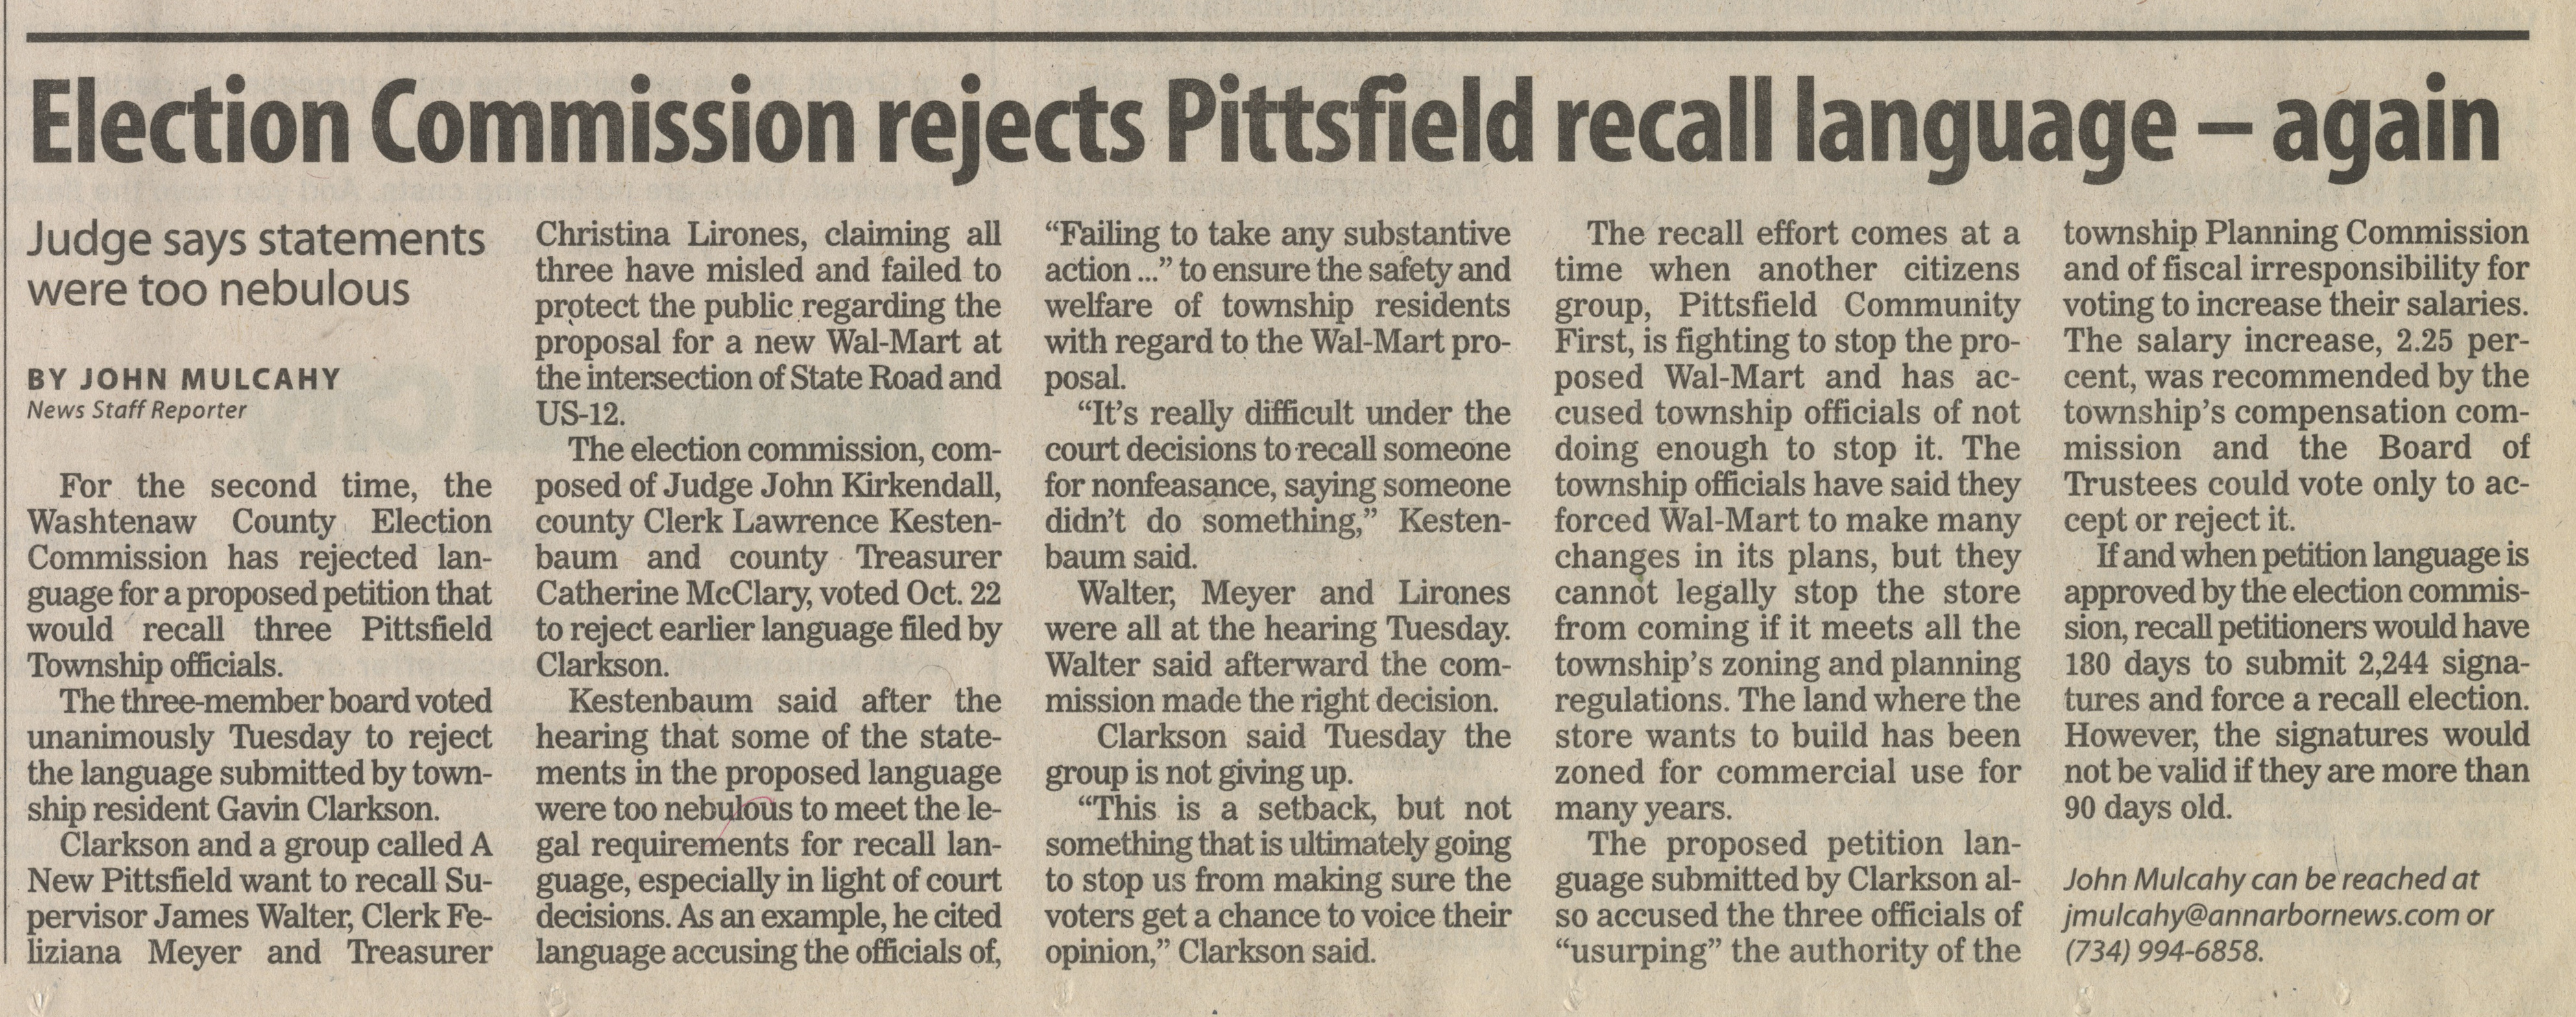 Election Commission Rejects Pittsfield Recall Language - Again image